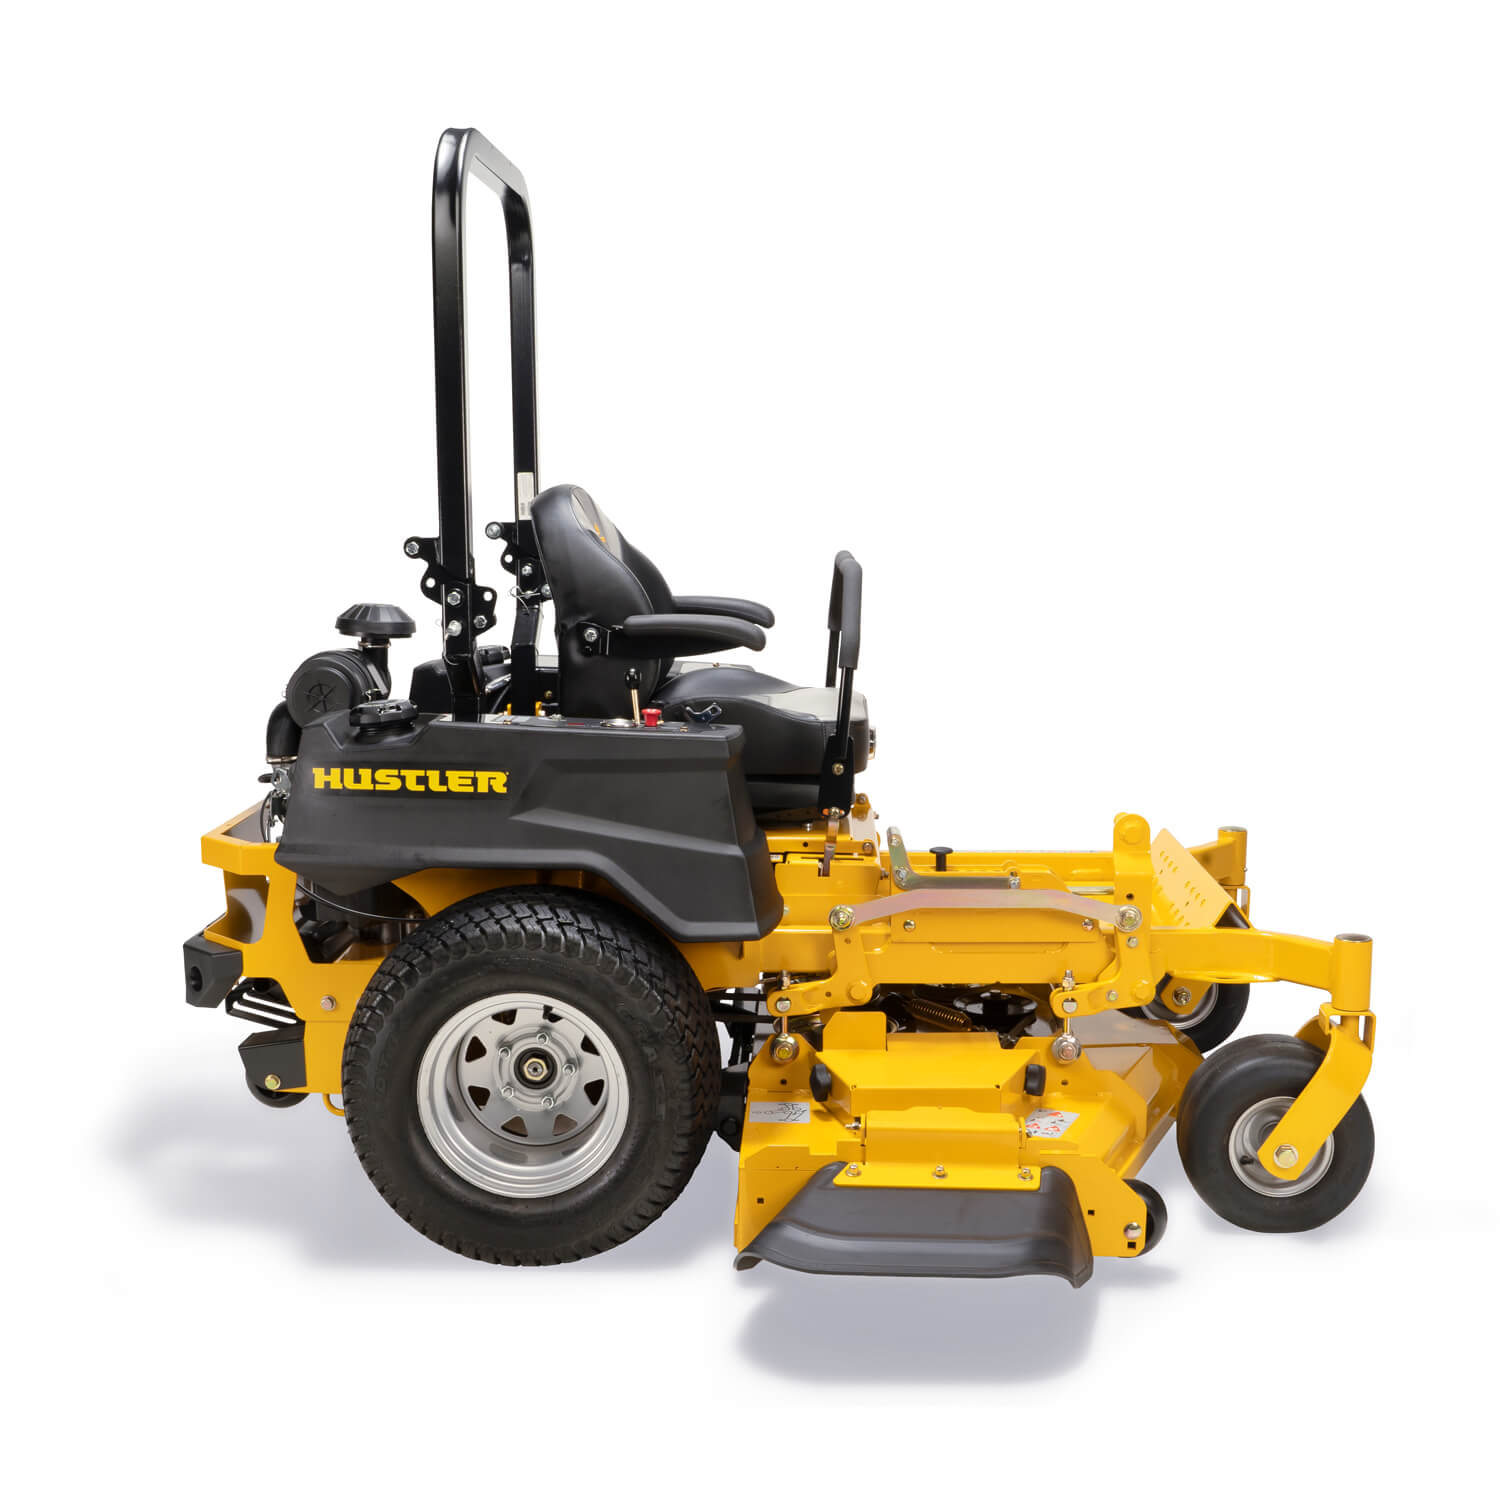 Image of the profile of a yellow zero-turn mower showing the discharge chute of the deck